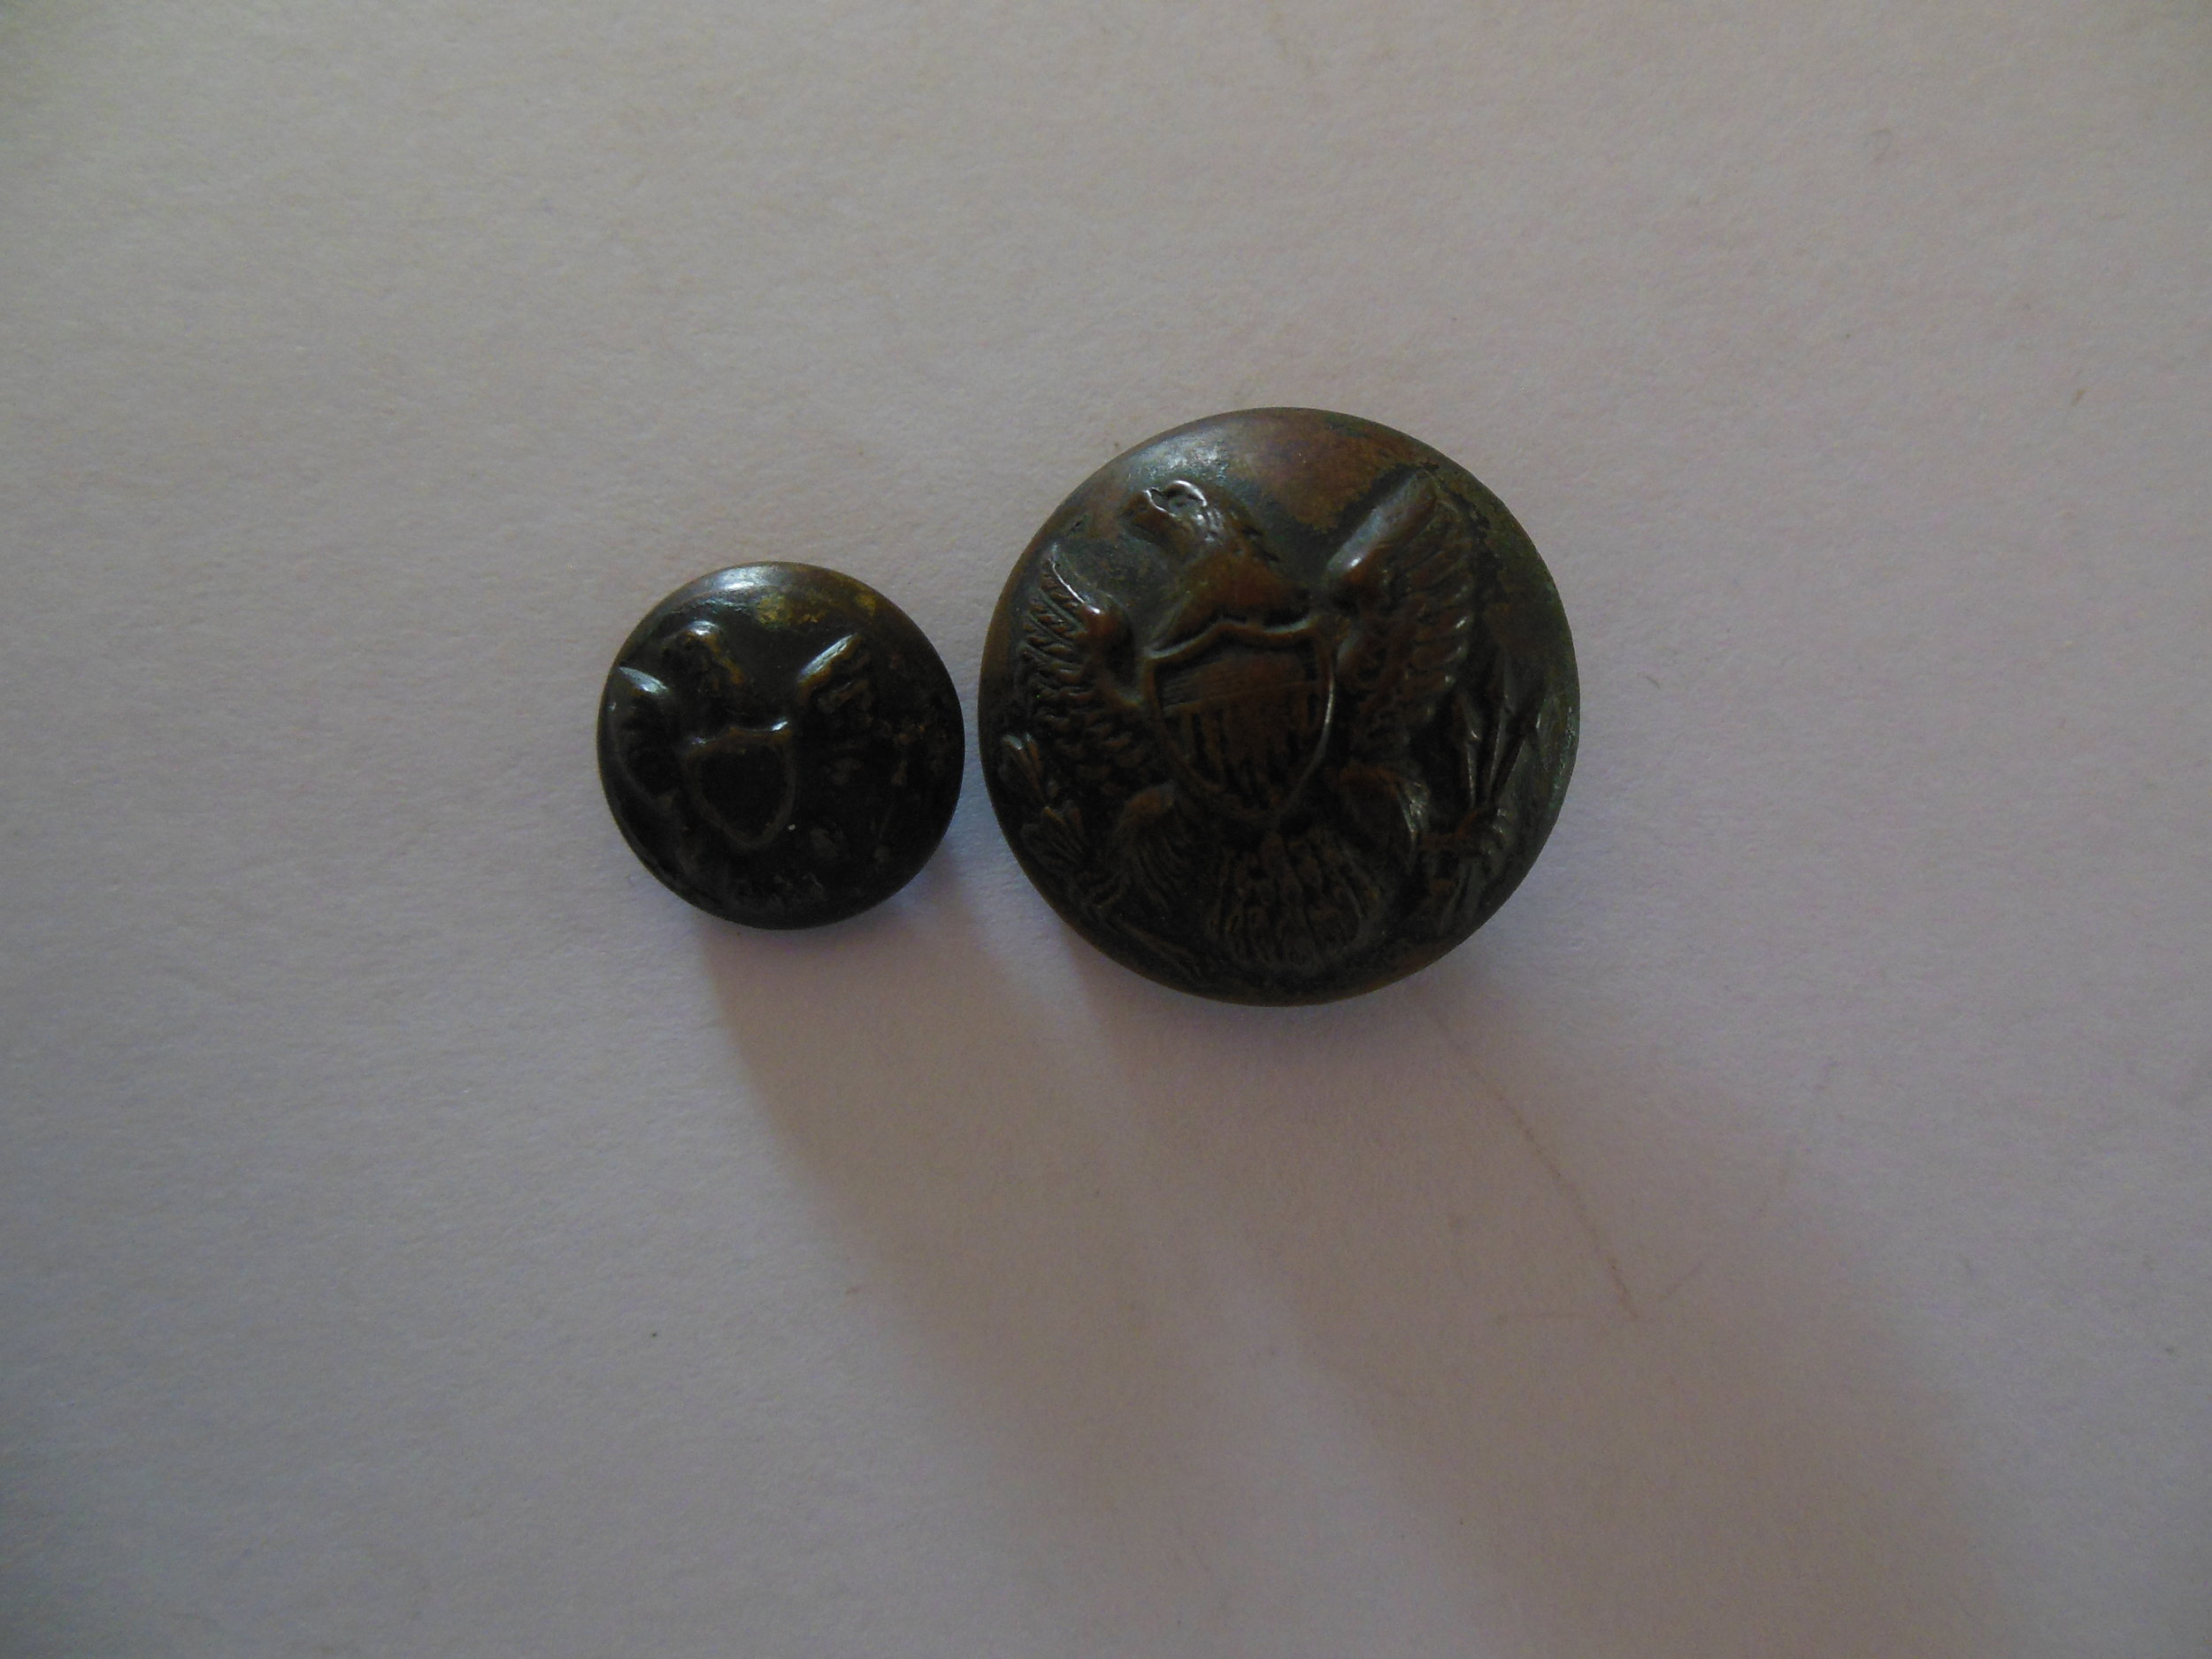 General Service Buttons 1850s to 1902. The larger of the two buttons has rust on the back and will need to be cleaned and preserved.